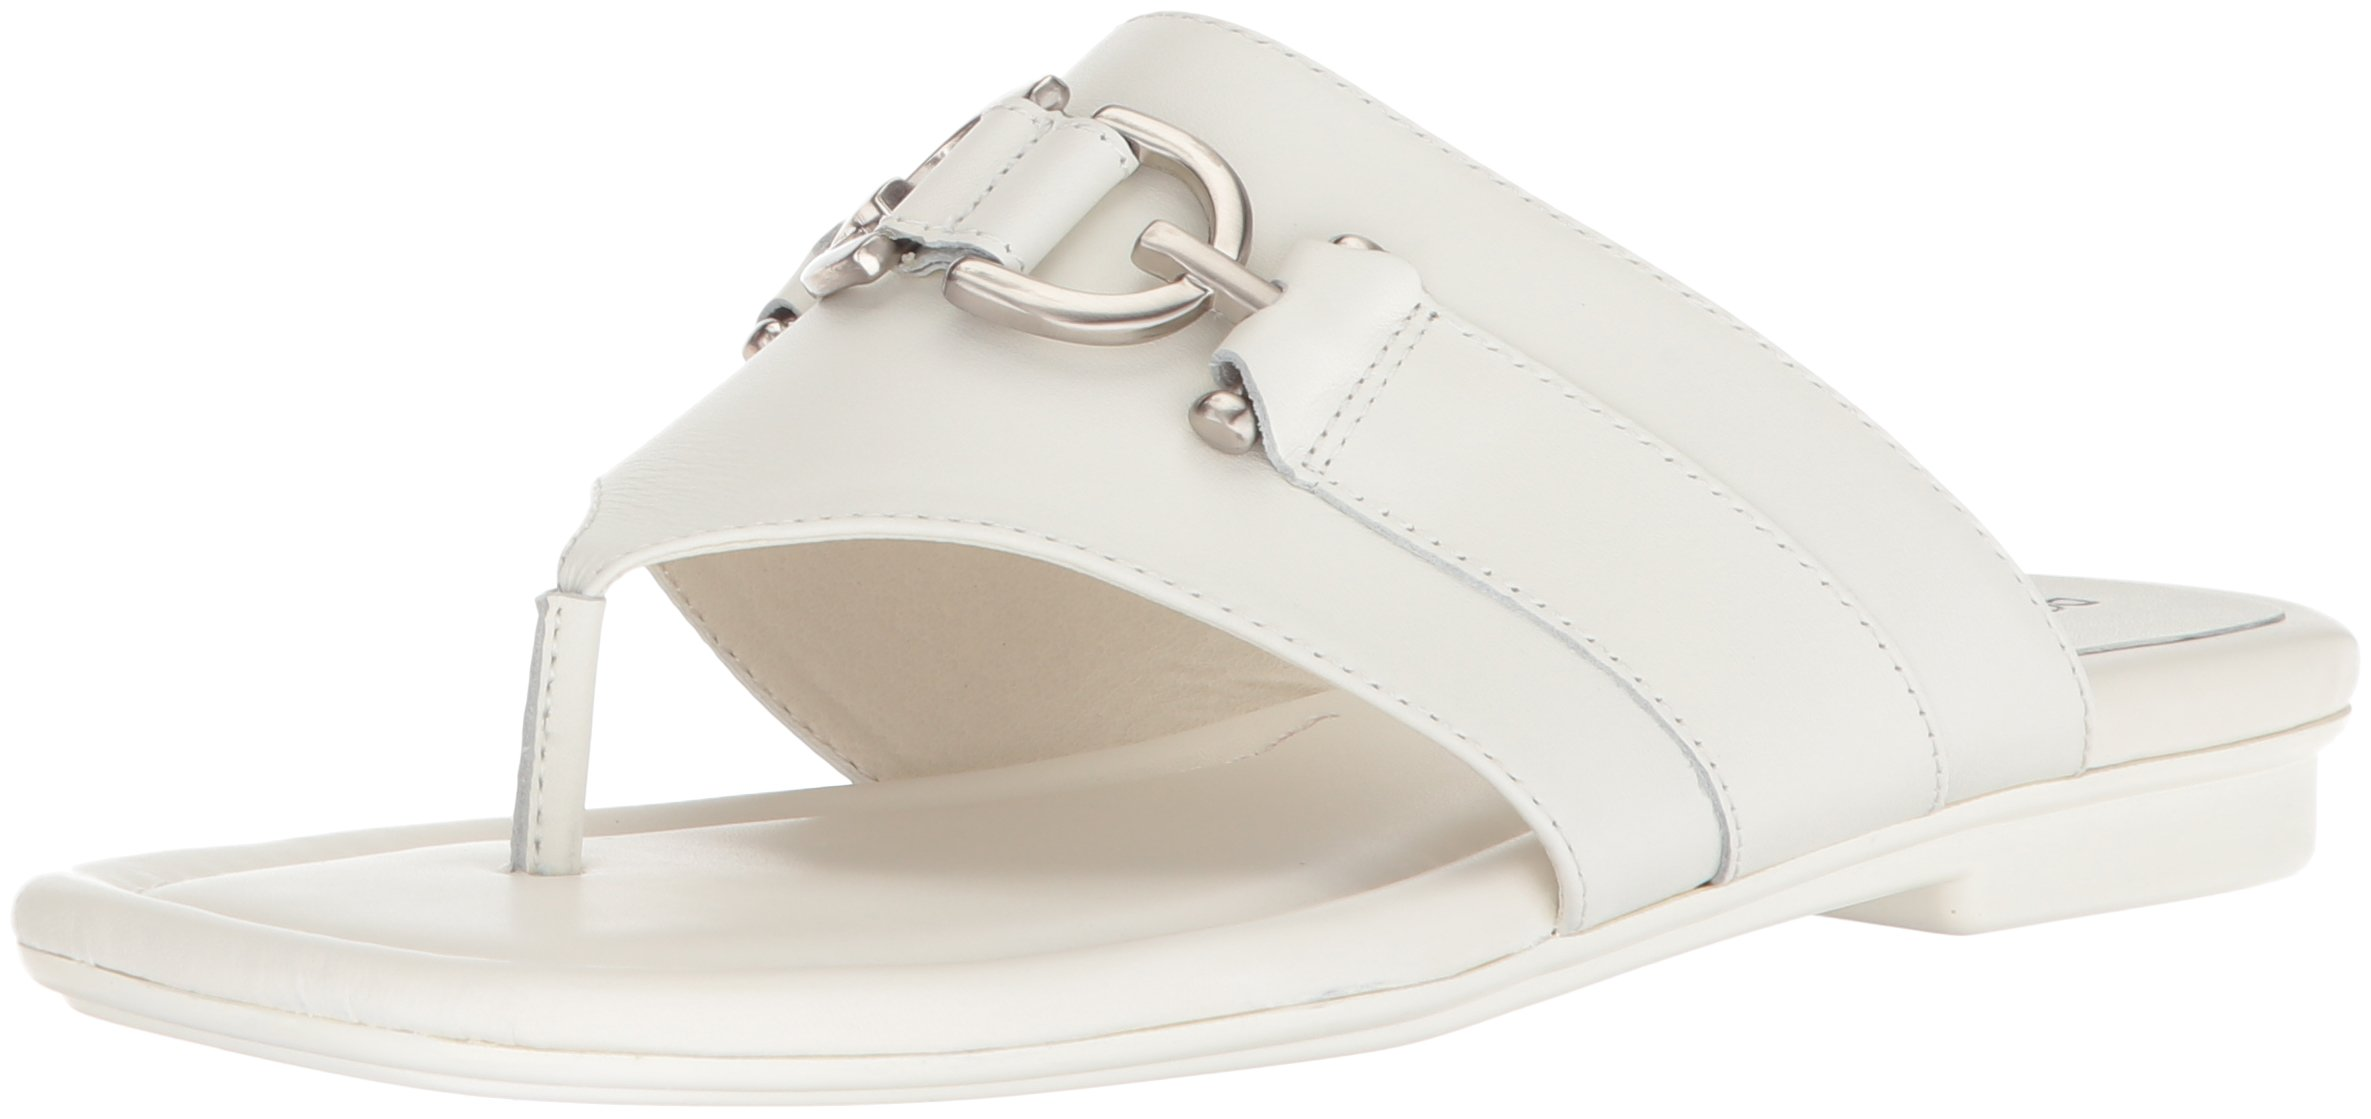 Donald J Pliner Women's Kent Slide Sandal, Bone, 10 Medium US